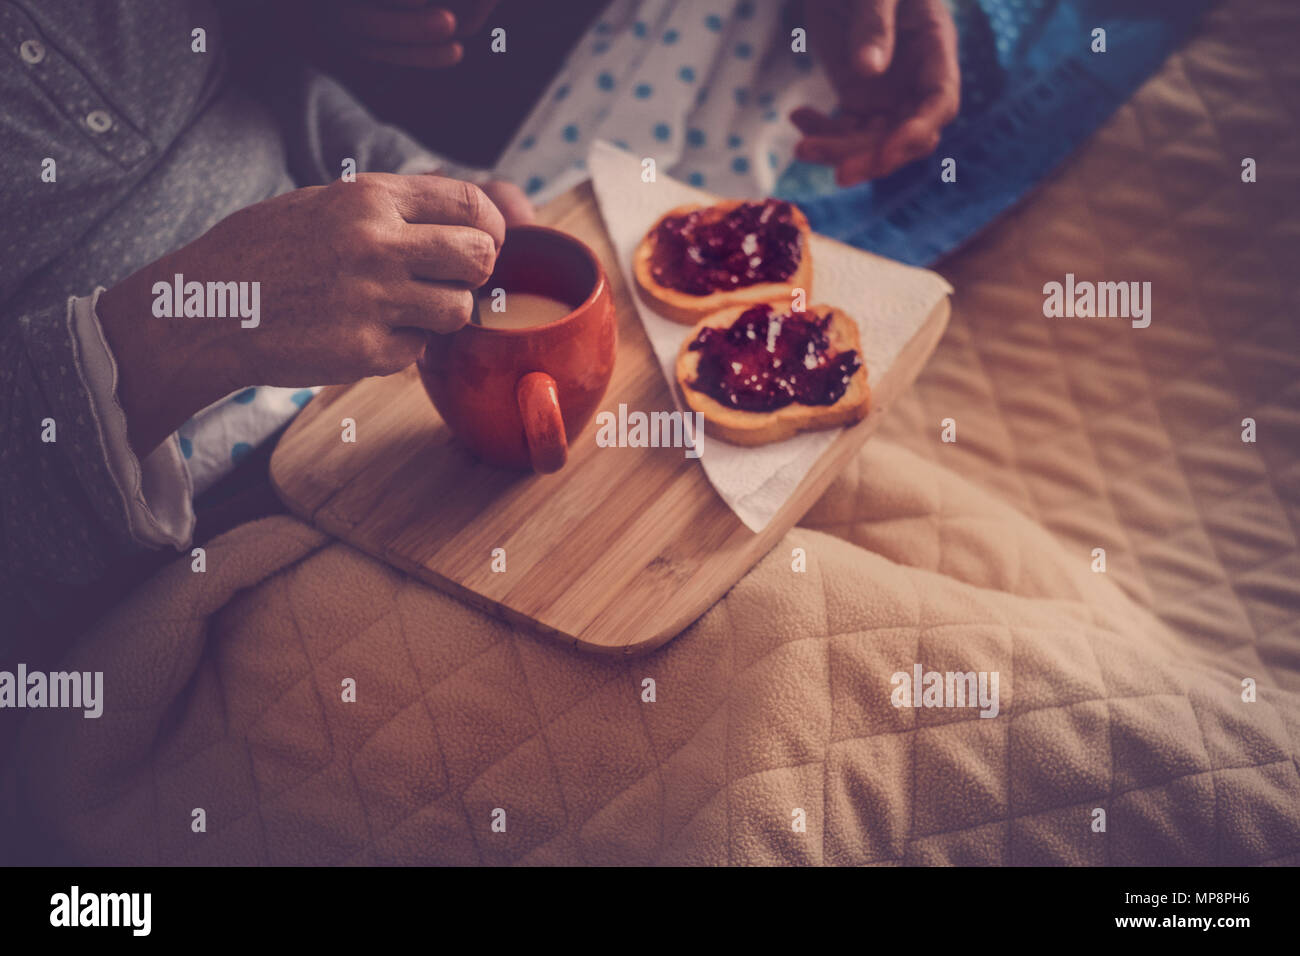 bedroom brekfast colose up at home. senior couple eat marmelade and milk and then wake up and start a new nice day together. vintage filter and beauti Stock Photo